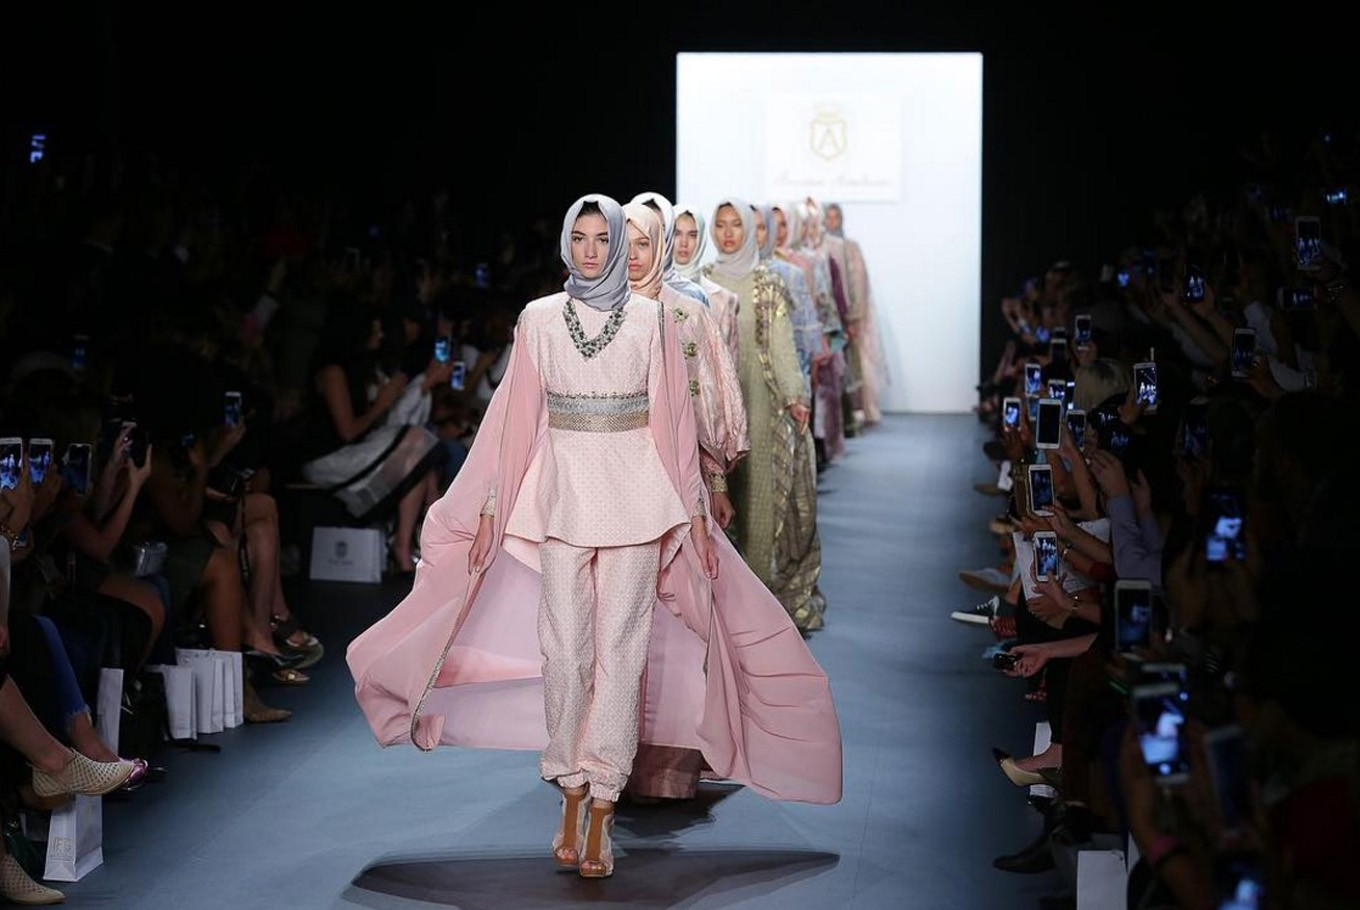 Bringing Indonesia's Muslim fashion to the New York stage